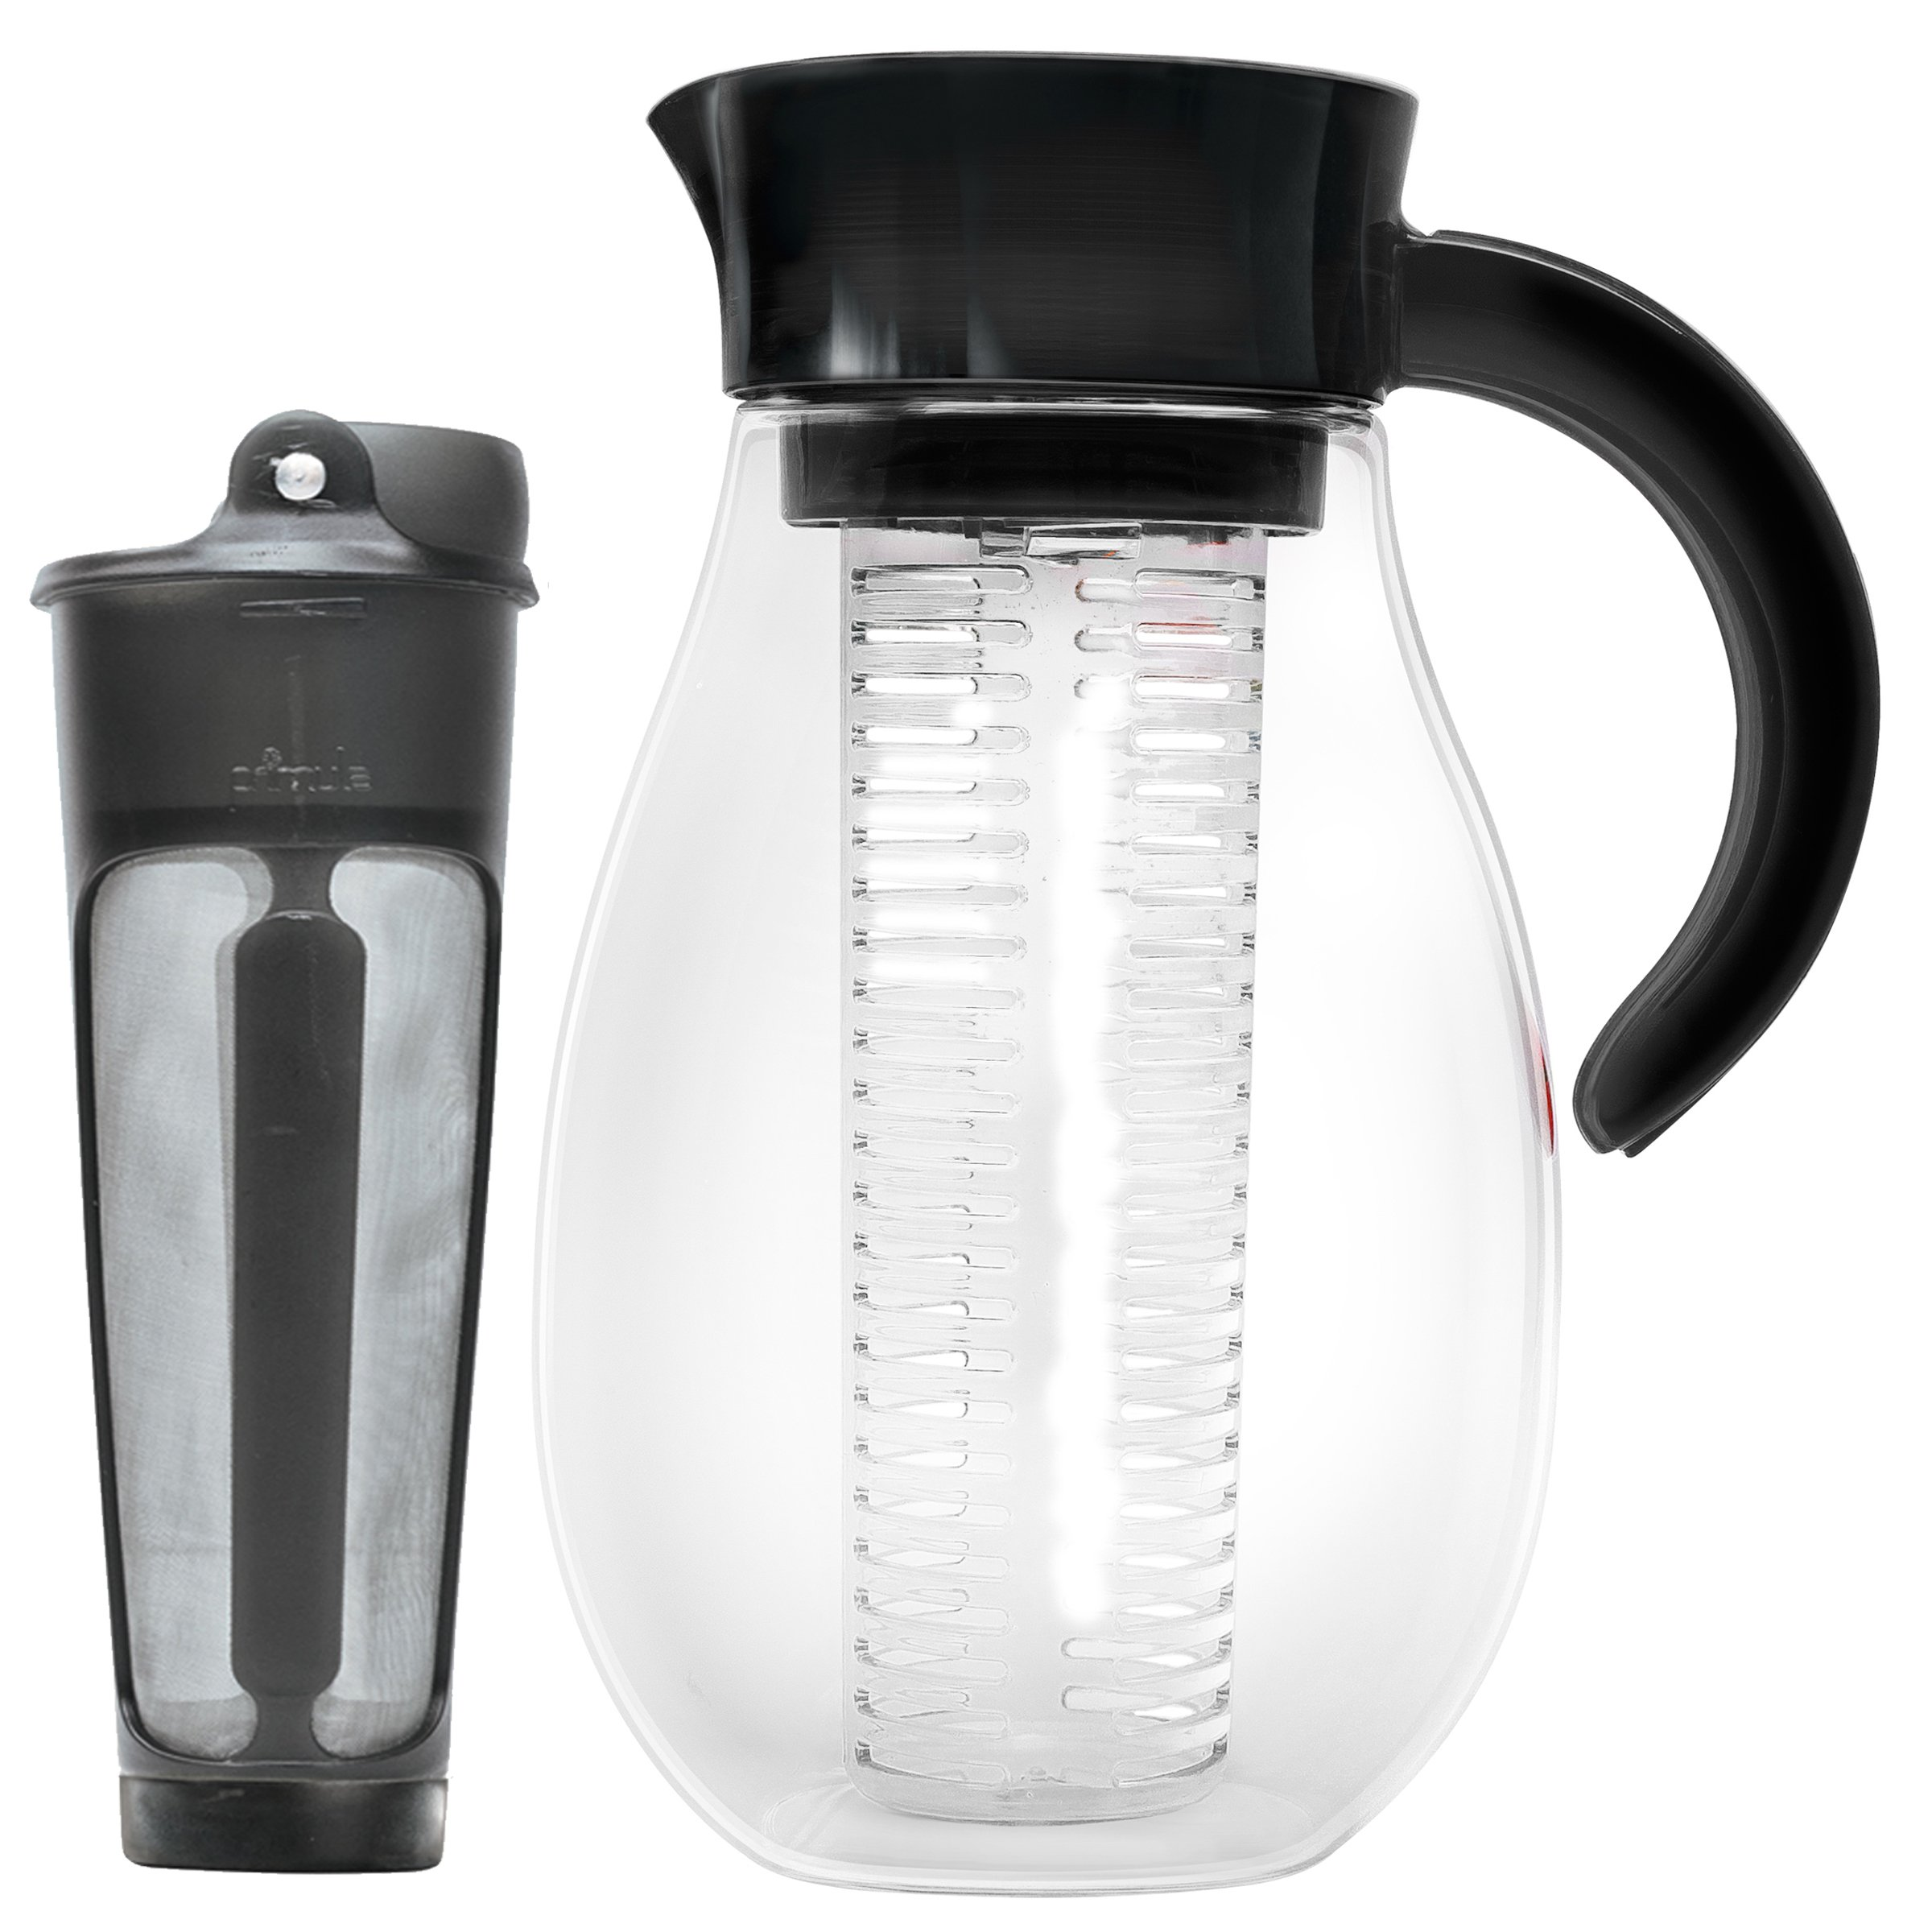 Primula PFUBK-3927 Flavor up Cold Brew Maker and Infusion Pitcher, 2.7 quart, Black